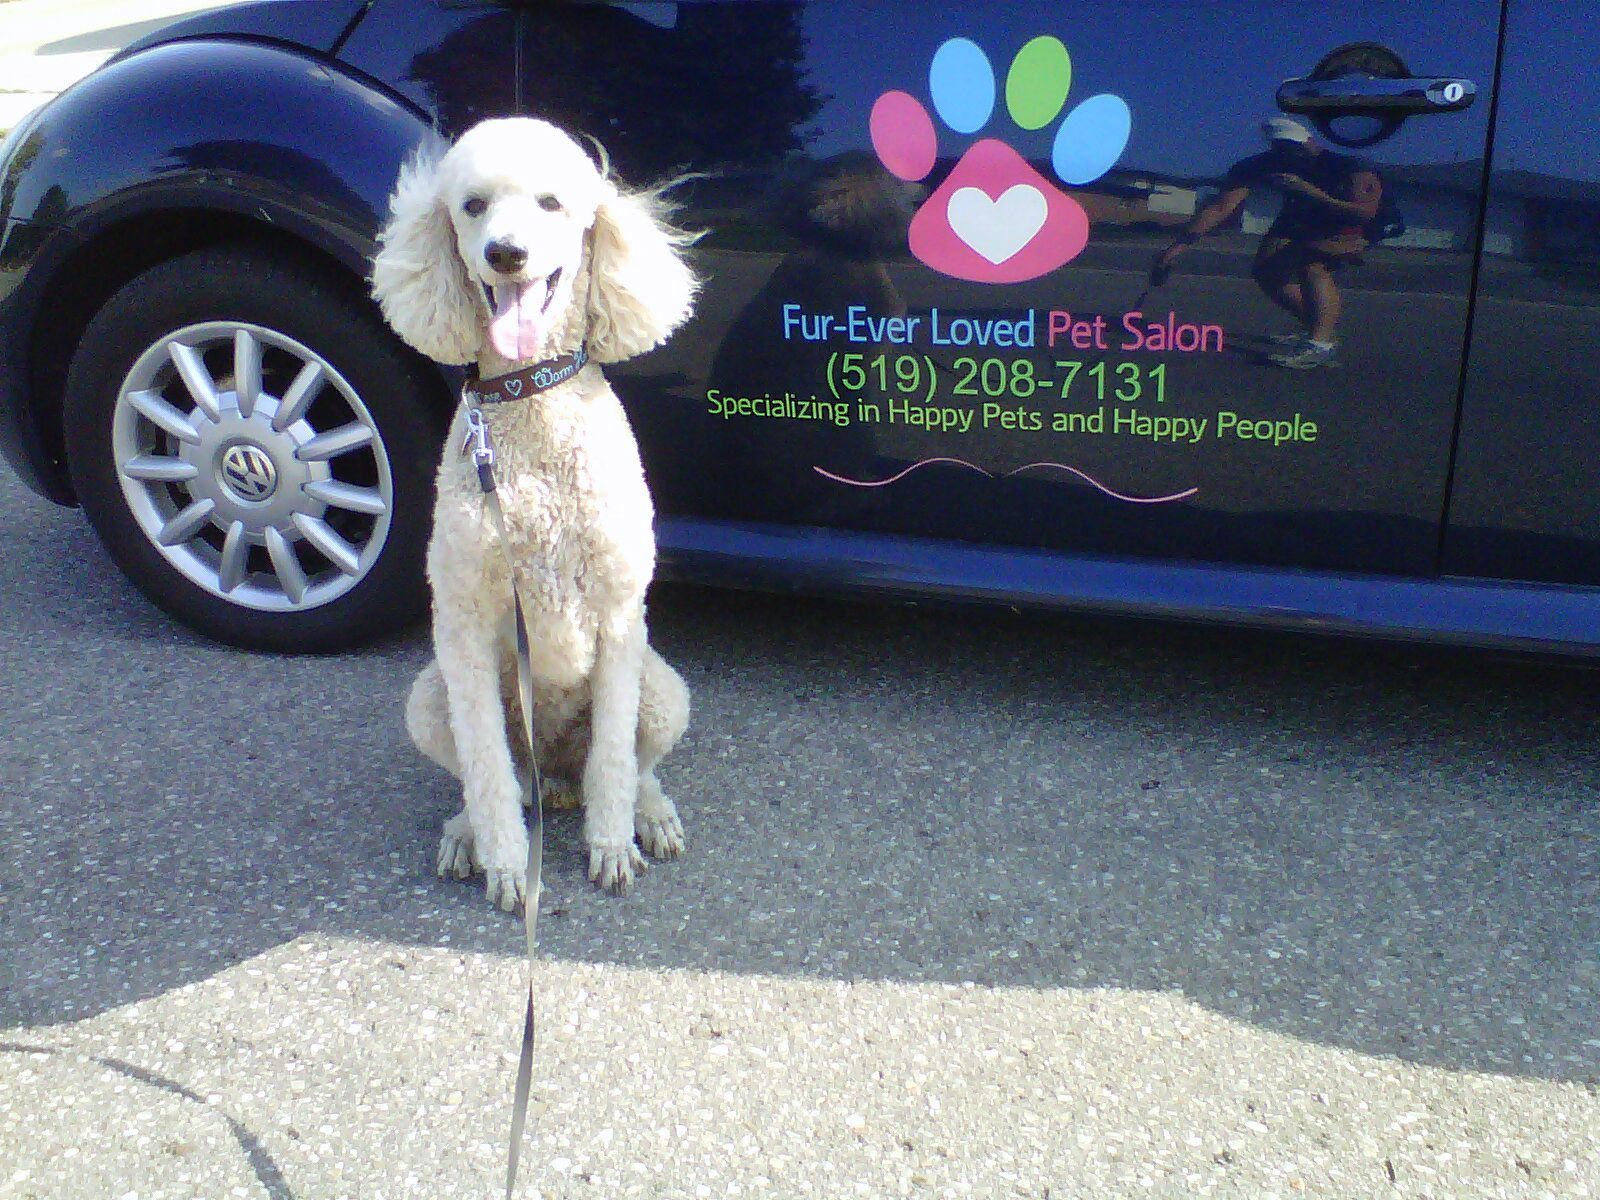 Pin On Dog Grooming Business Marketing